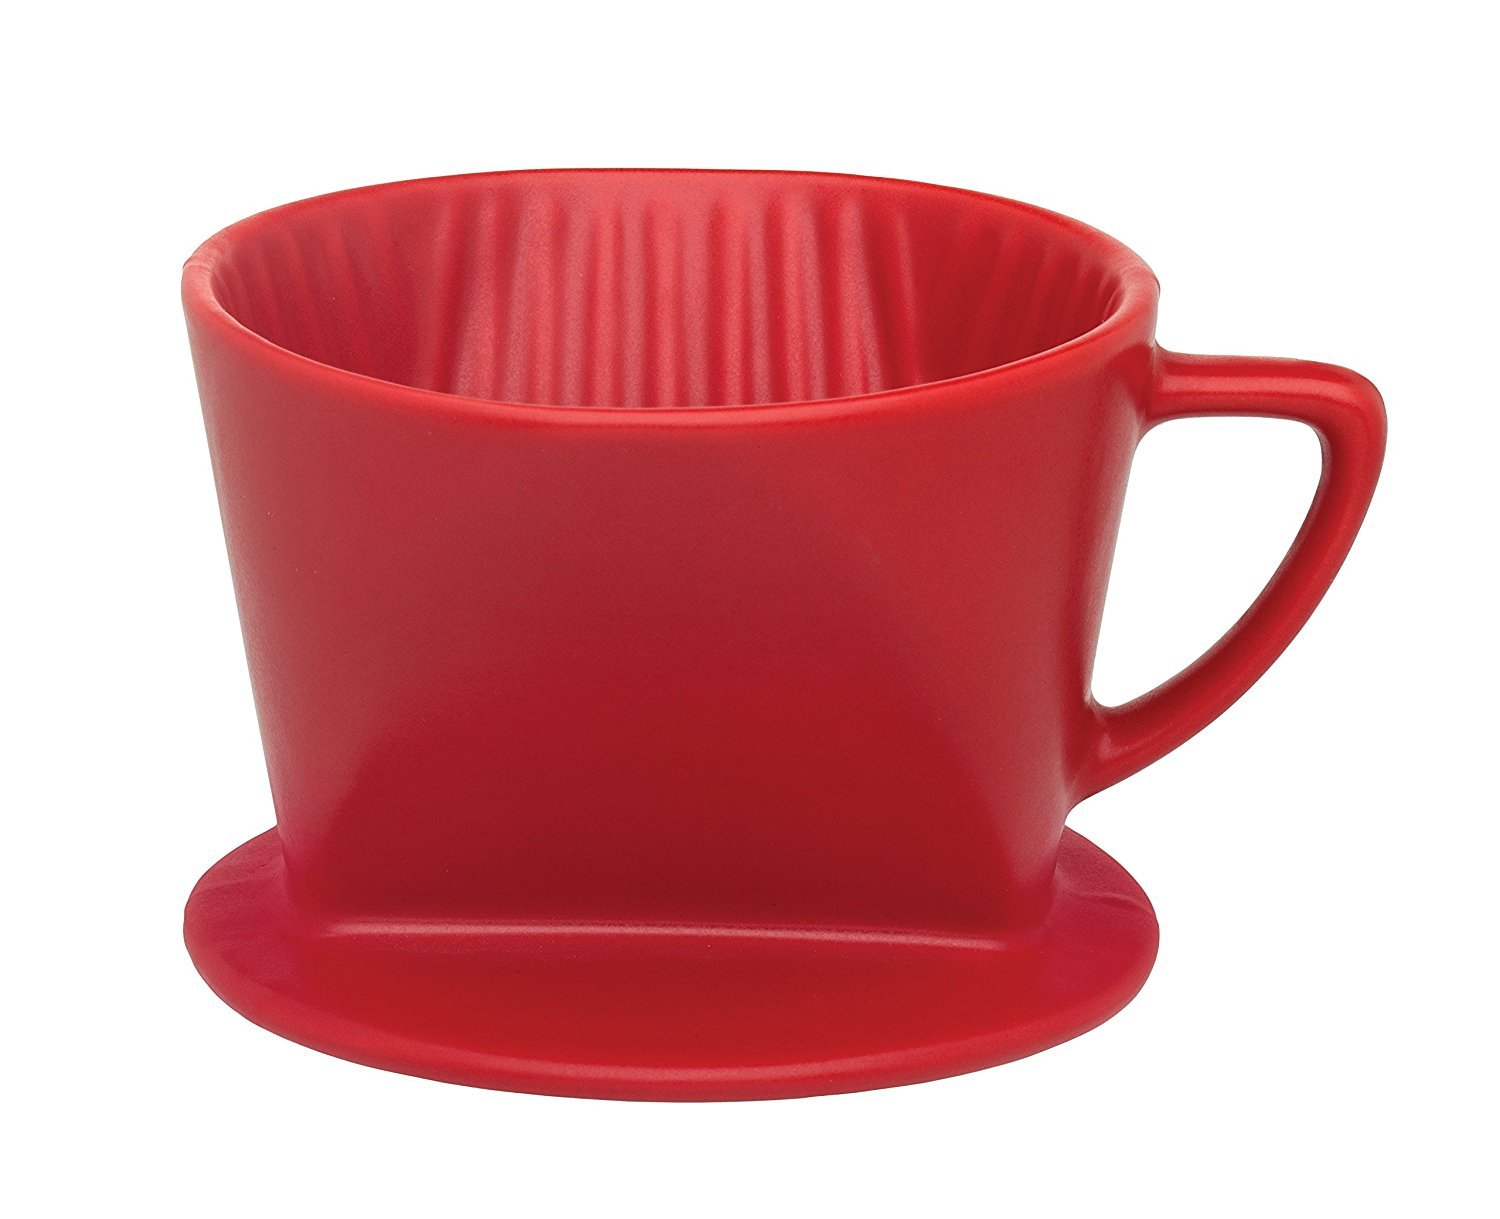 HIC Harold Import Co. HIC Filter Cone, Matte Red, Number 1-Size, Brews 1 to 2-Cups NT1050RD